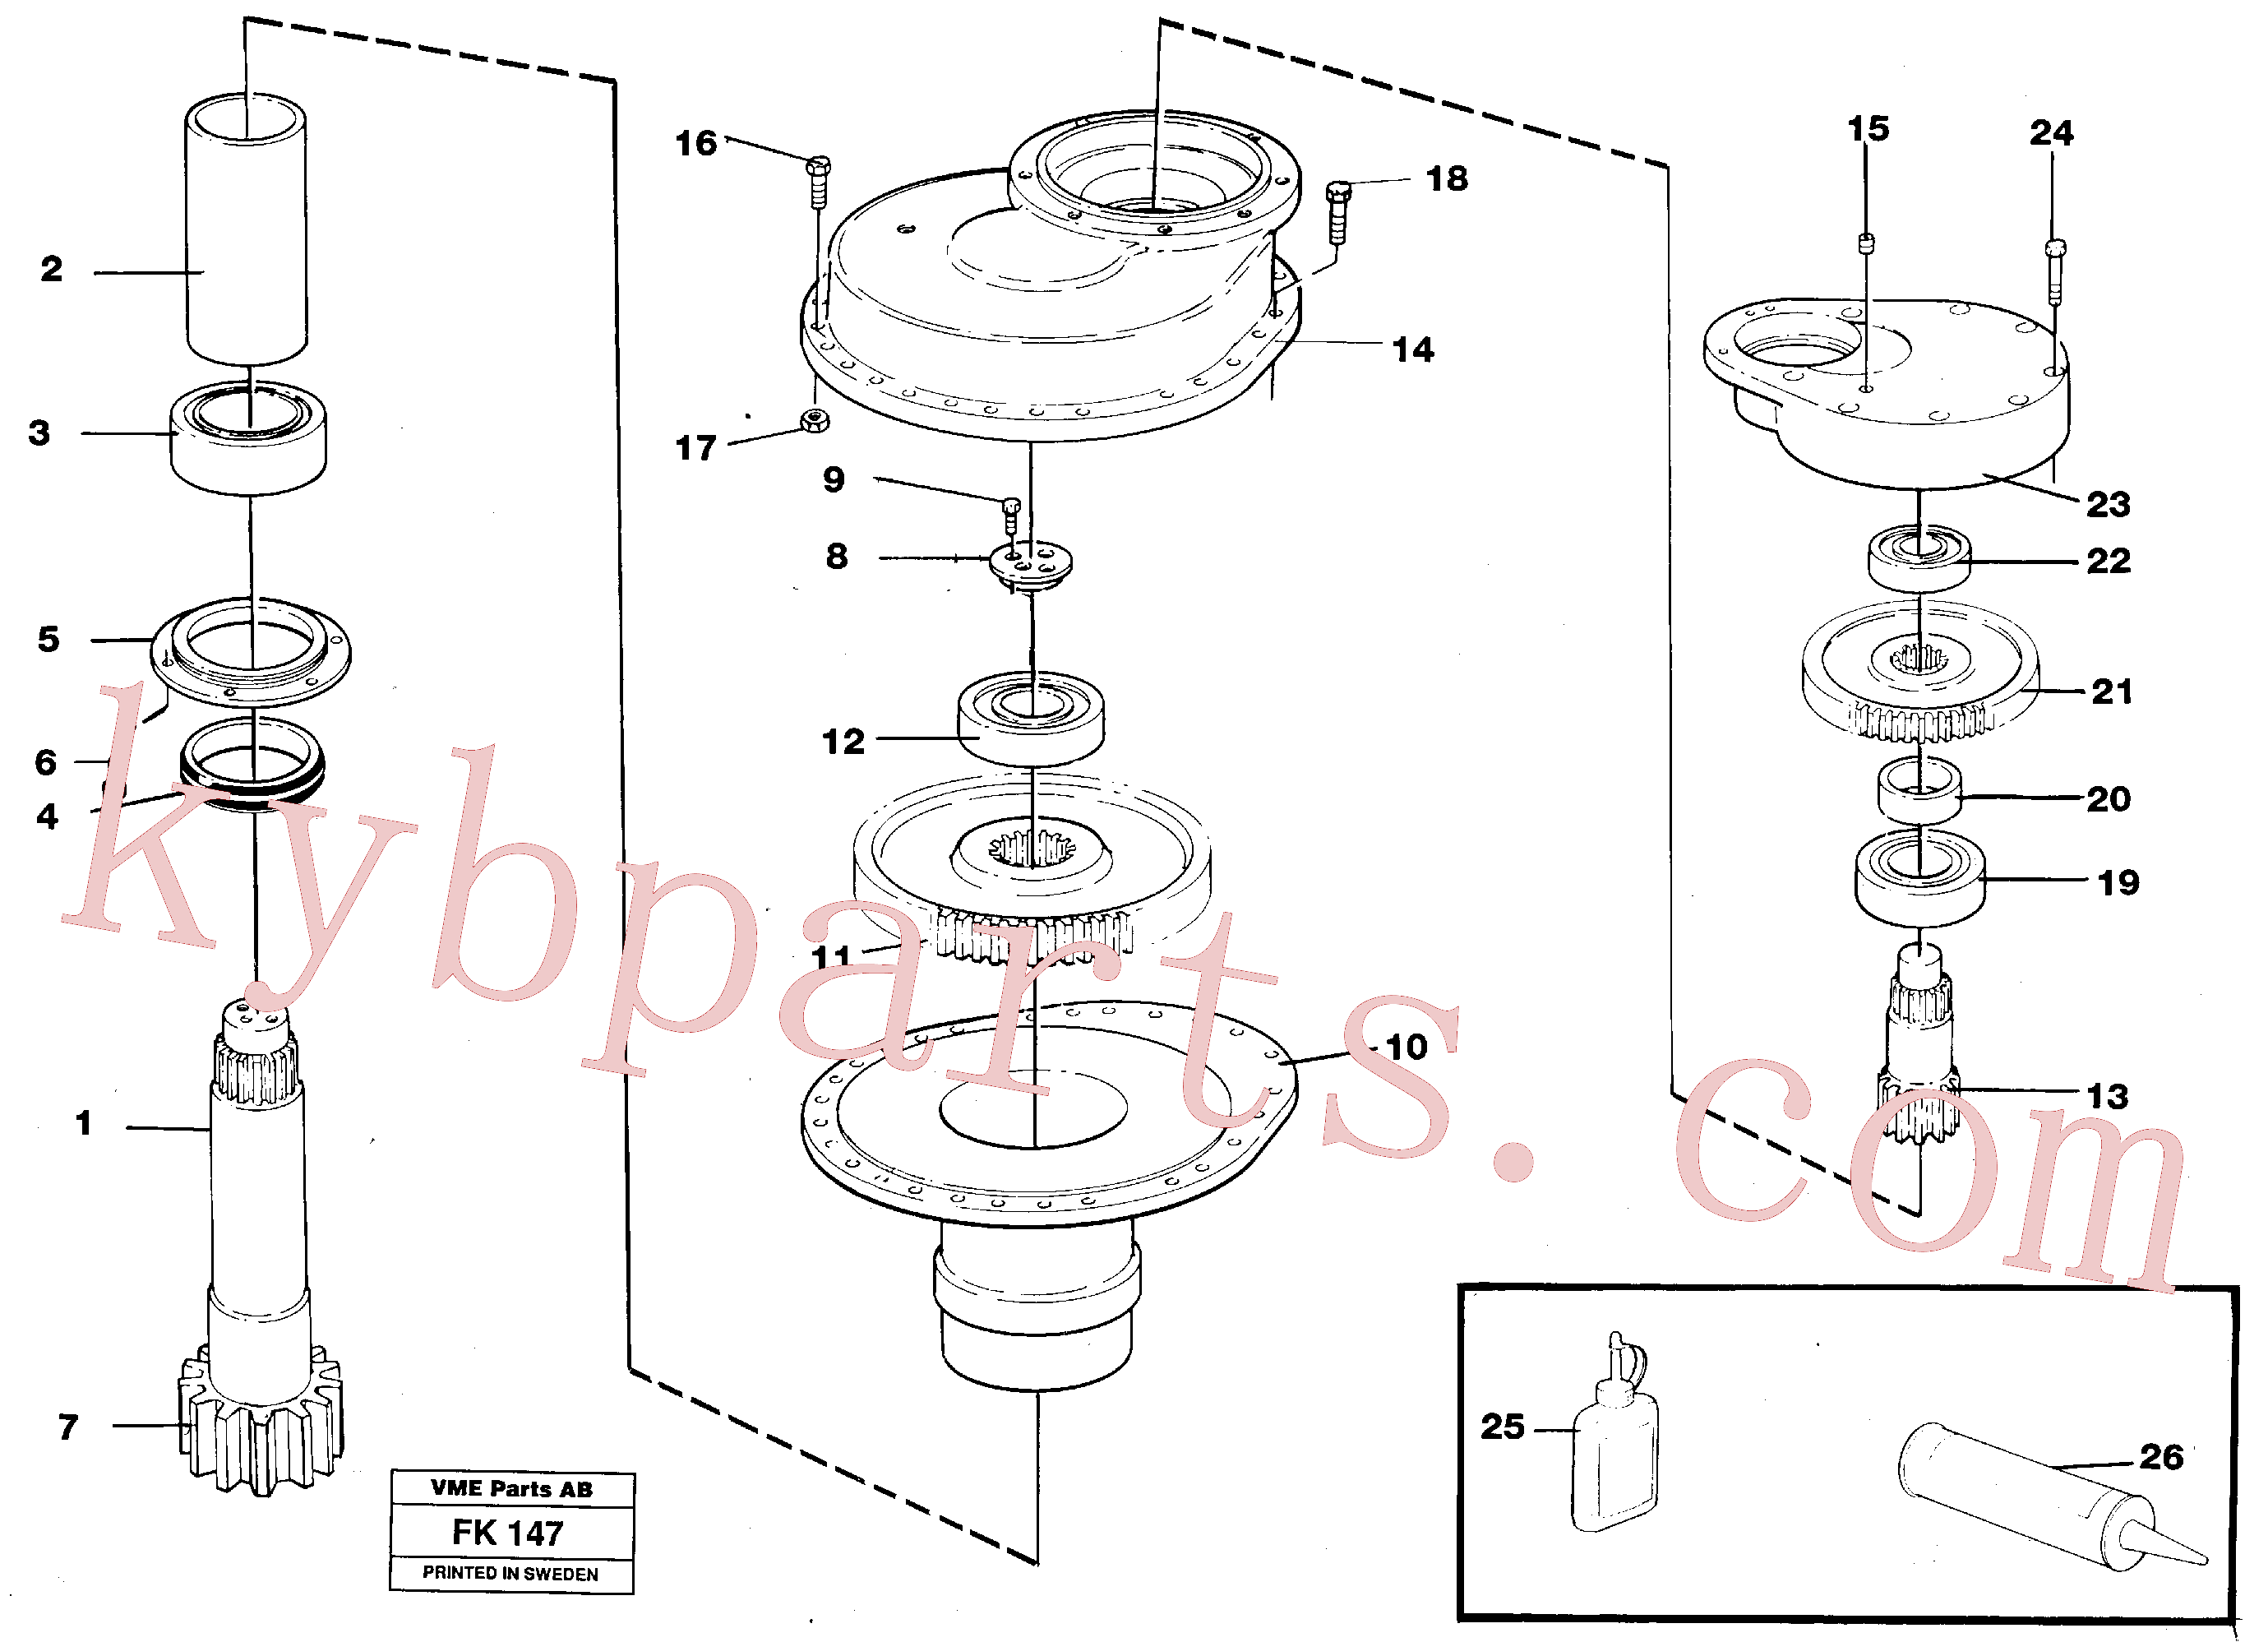 VOE14015043 for Volvo Swing gearbox(FK147 assembly)